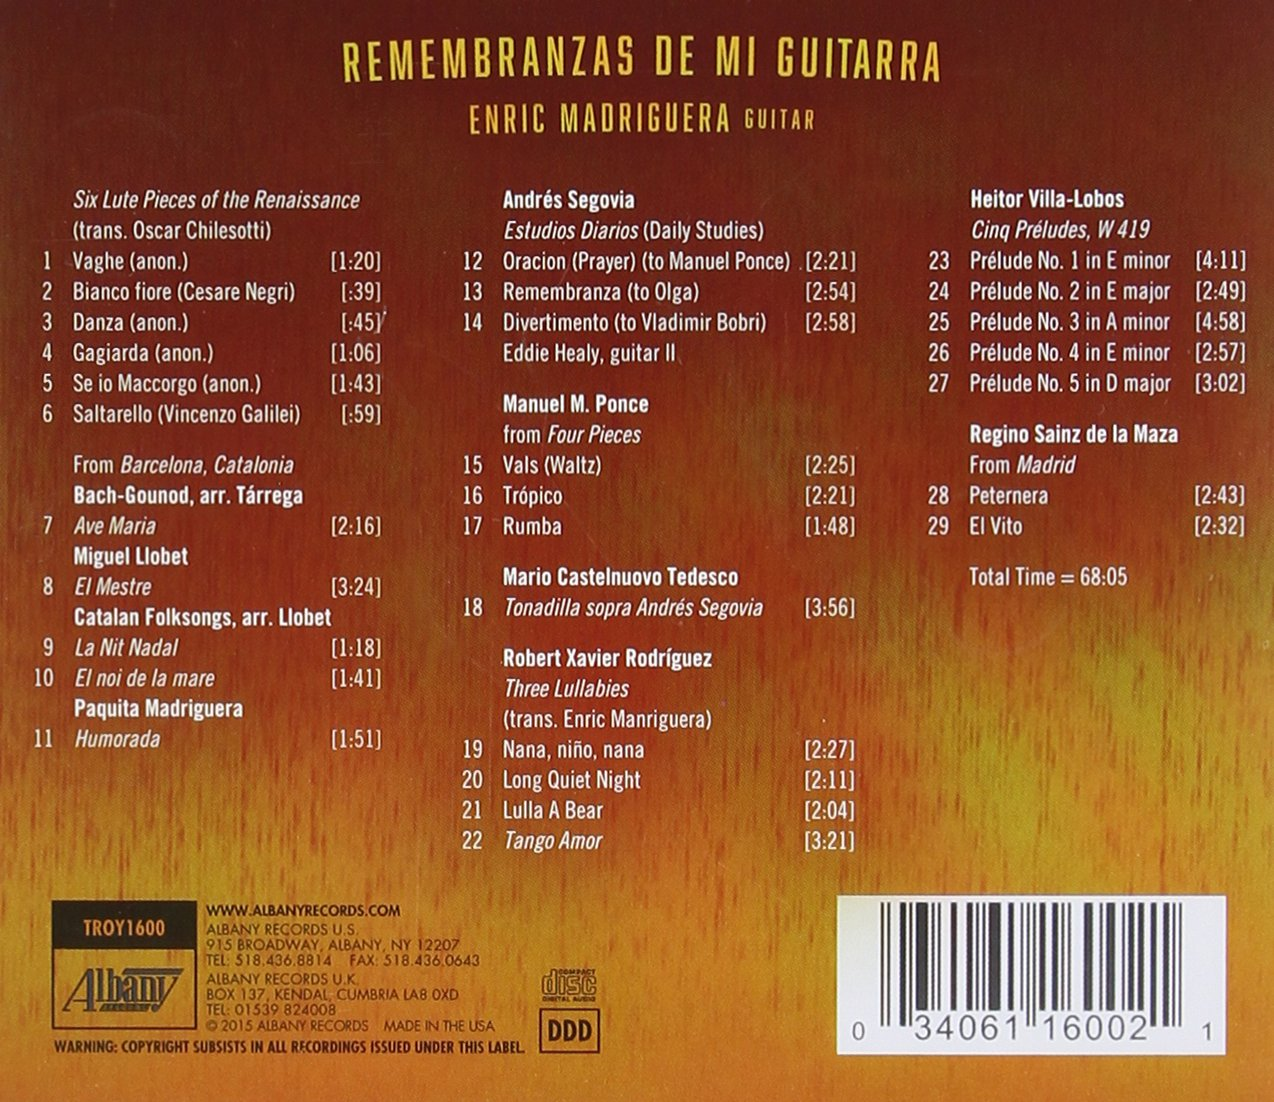 Chilesotti enric madriguera remembranzas de mi guitarra amazon com music